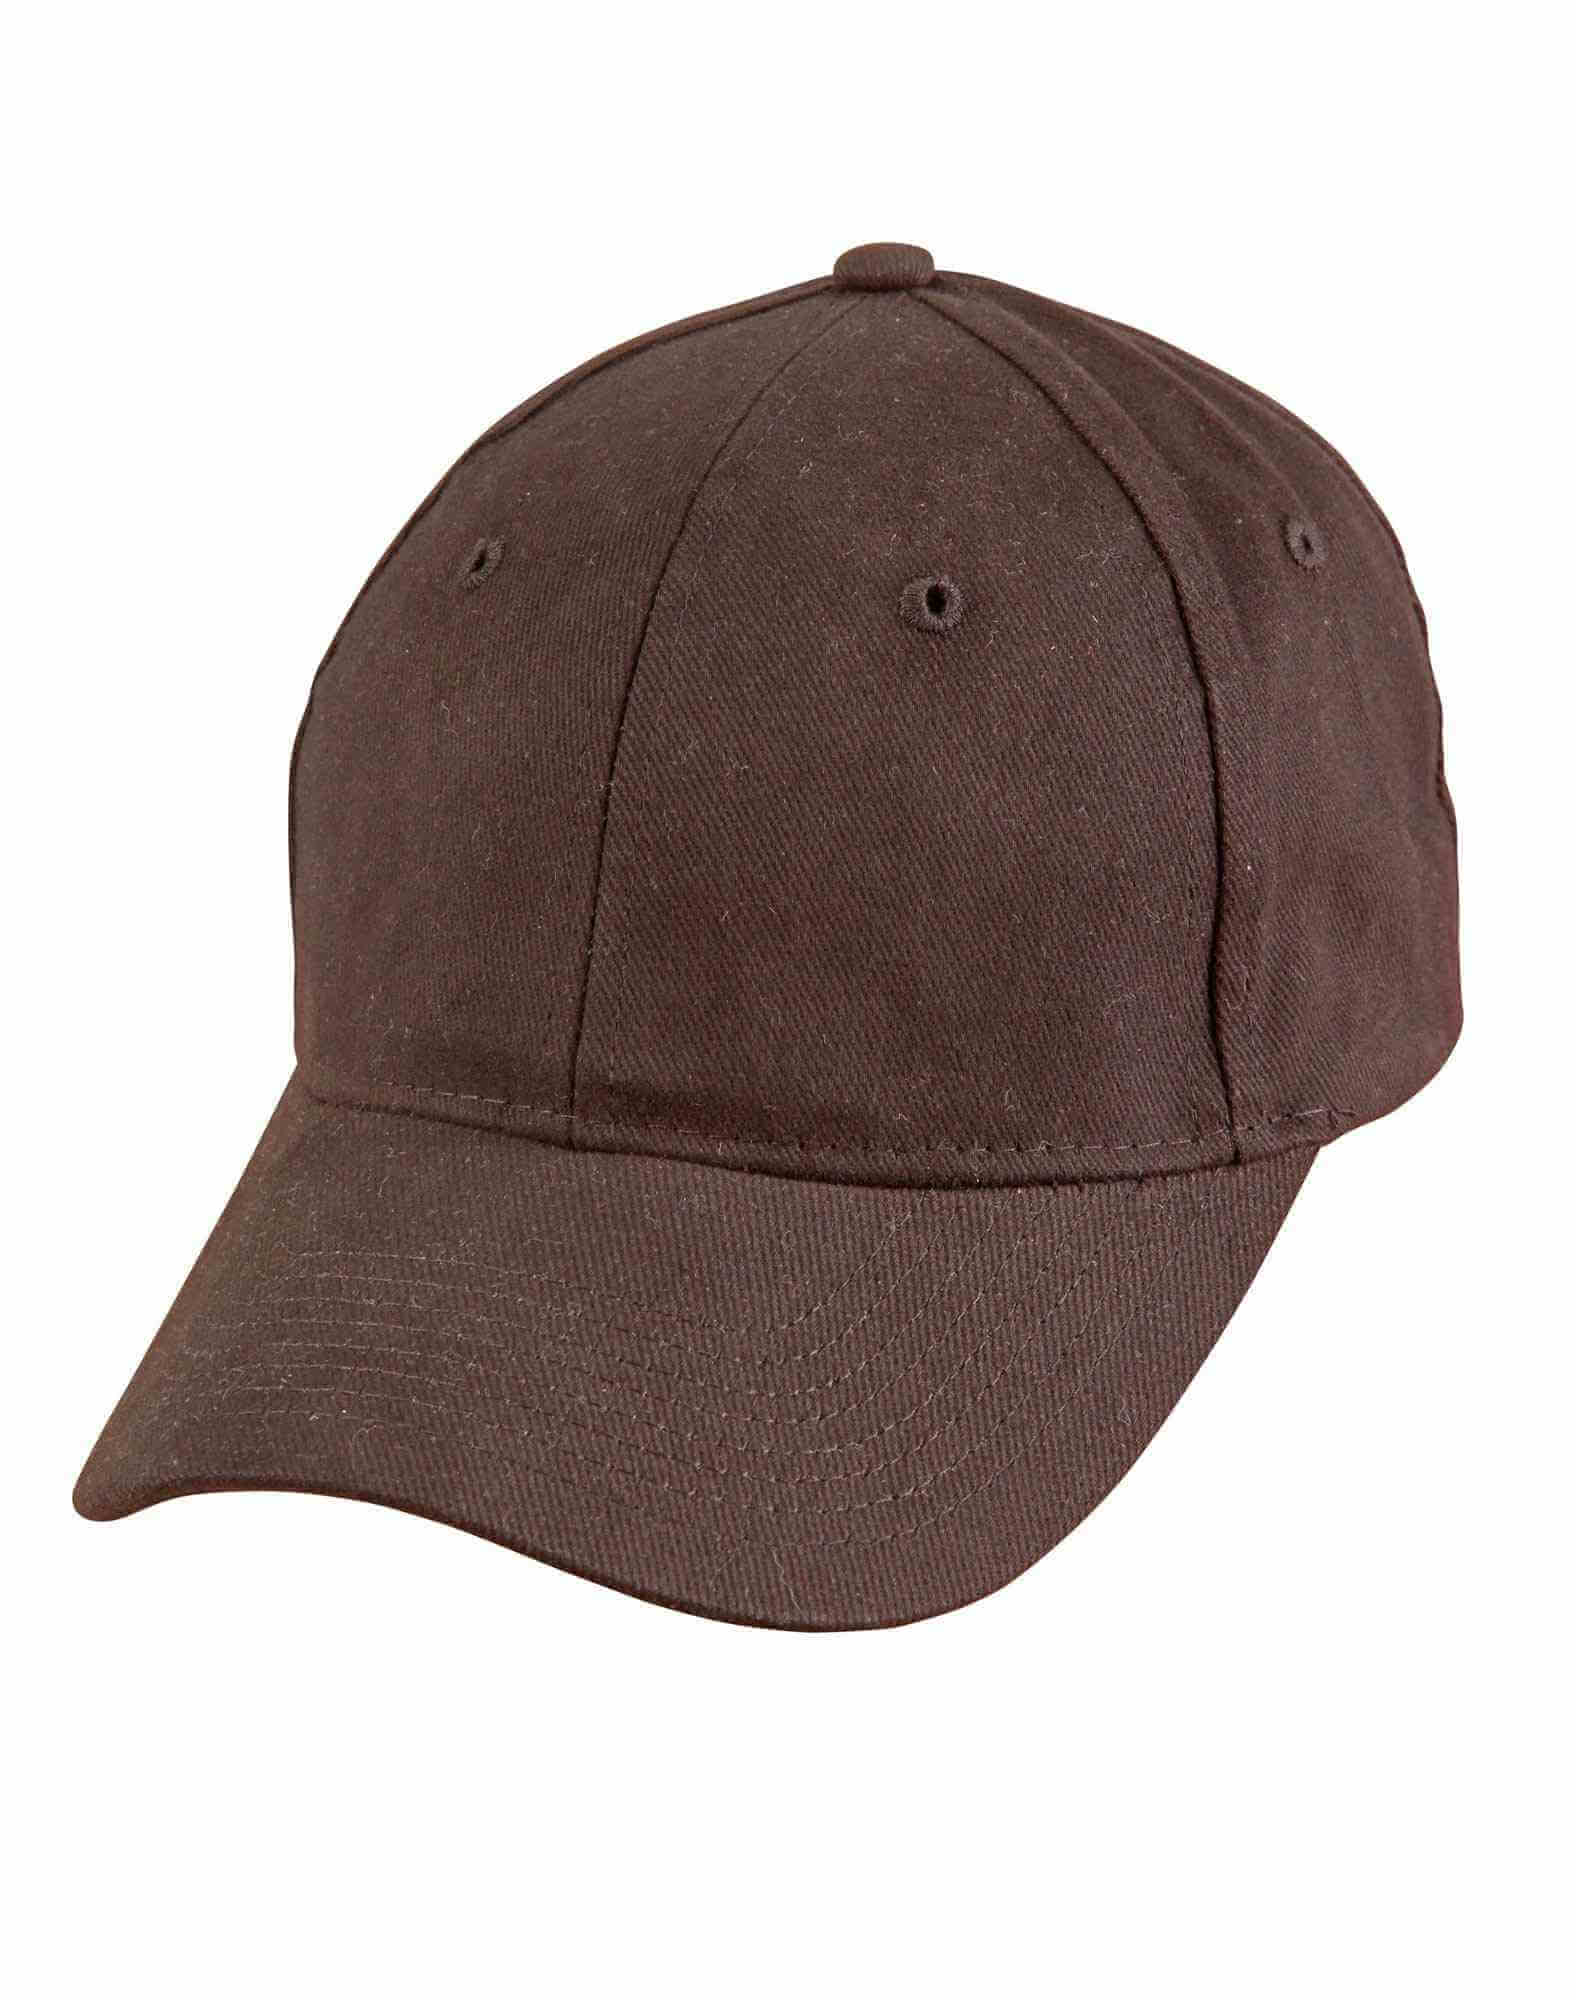 Ch35 Heavy Brushed Cotton Cap With Buckle01 08 2015 09 33 43 - Ch35 Heavy Brushed Cotton Cap With Buckle